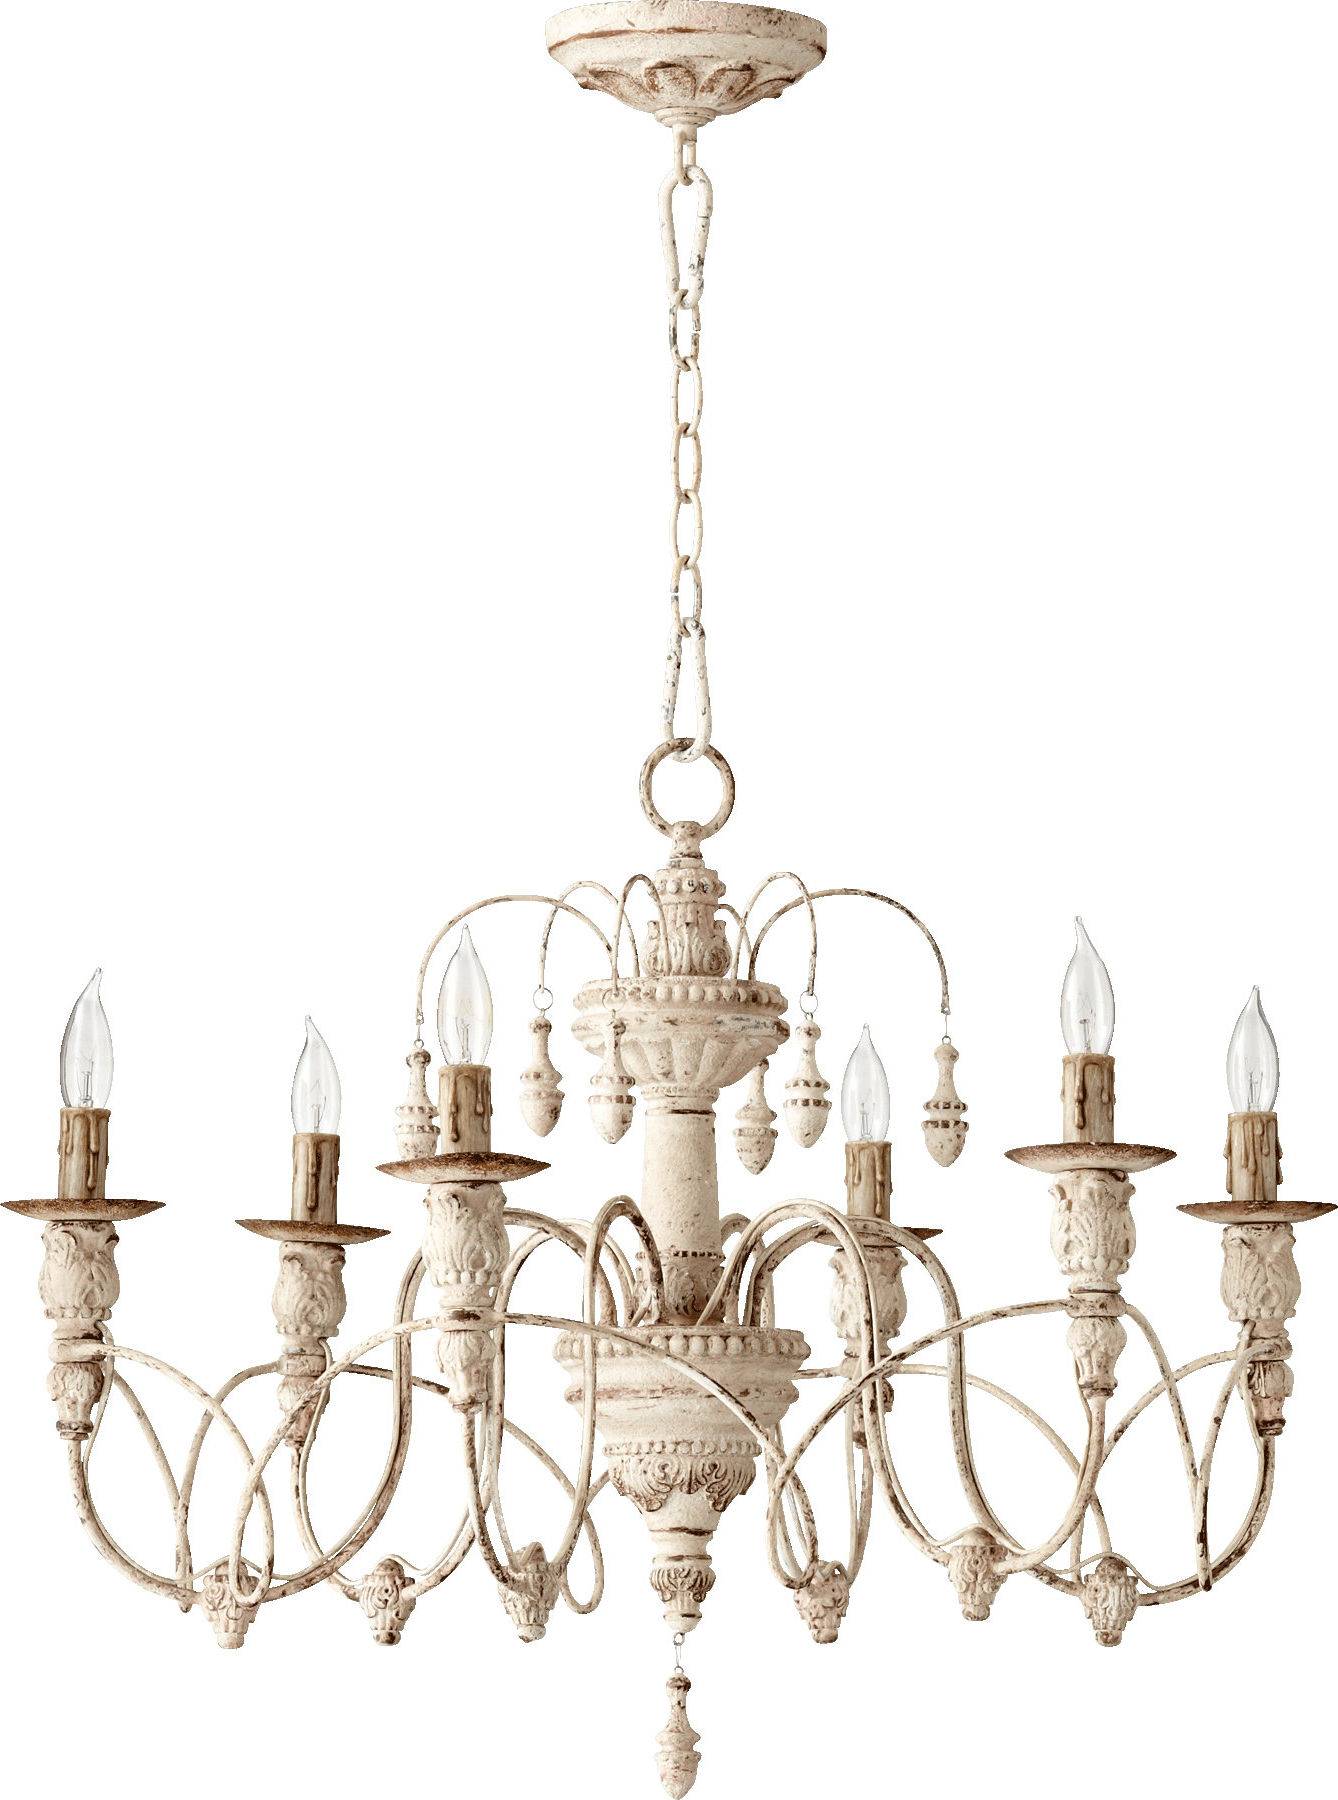 Paladino 6 Light Chandeliers Within Current Paladino 6 Light Candle Style Chandelier (Gallery 2 of 20)